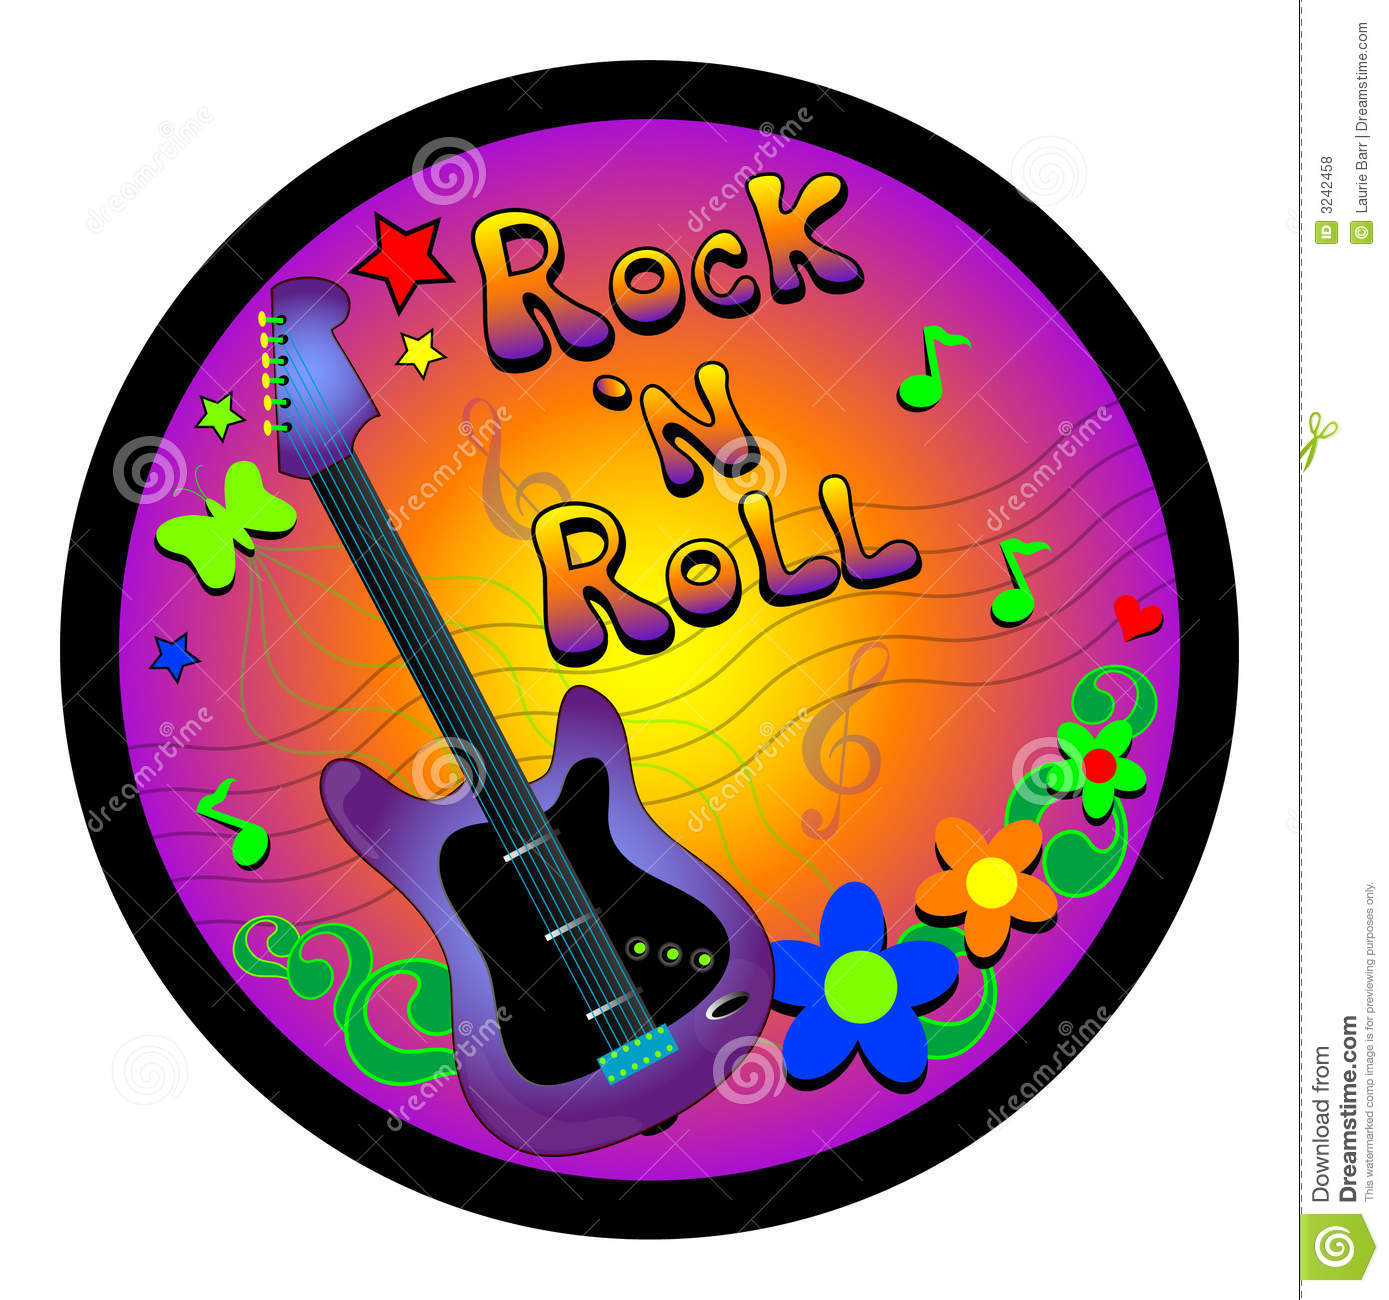 Rock And Roll Graphic Royalty Free Stock-Rock And Roll Graphic Royalty Free Stock Photos Image 3242458-6